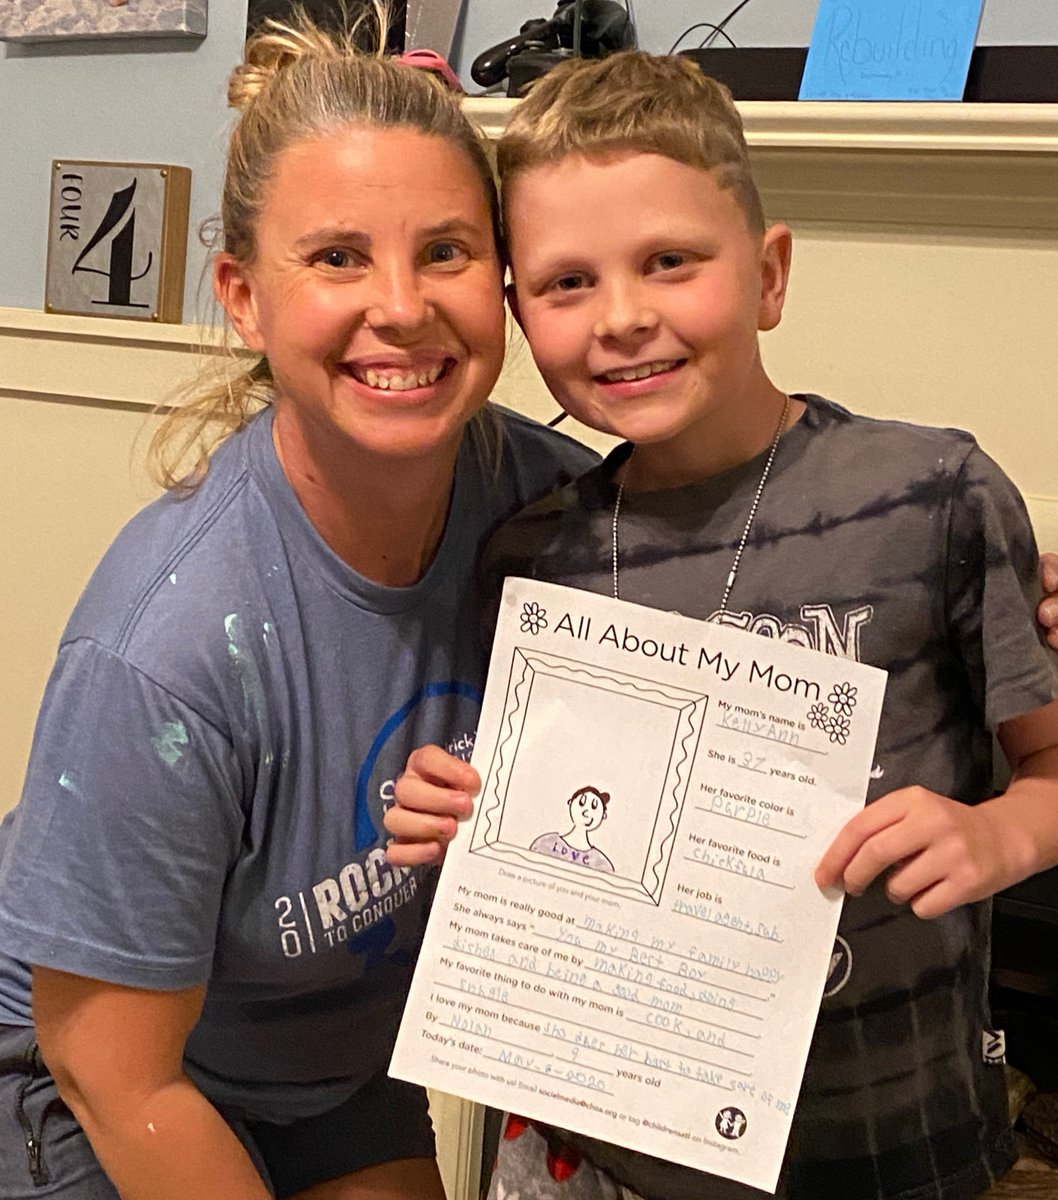 Our patients have been filling out All About My Mom printables to highlight their amazing moms, and their messages will warm your hearts. Want to join the fun? Download a copy at choa.org/mothersday, and tag us in your photos.